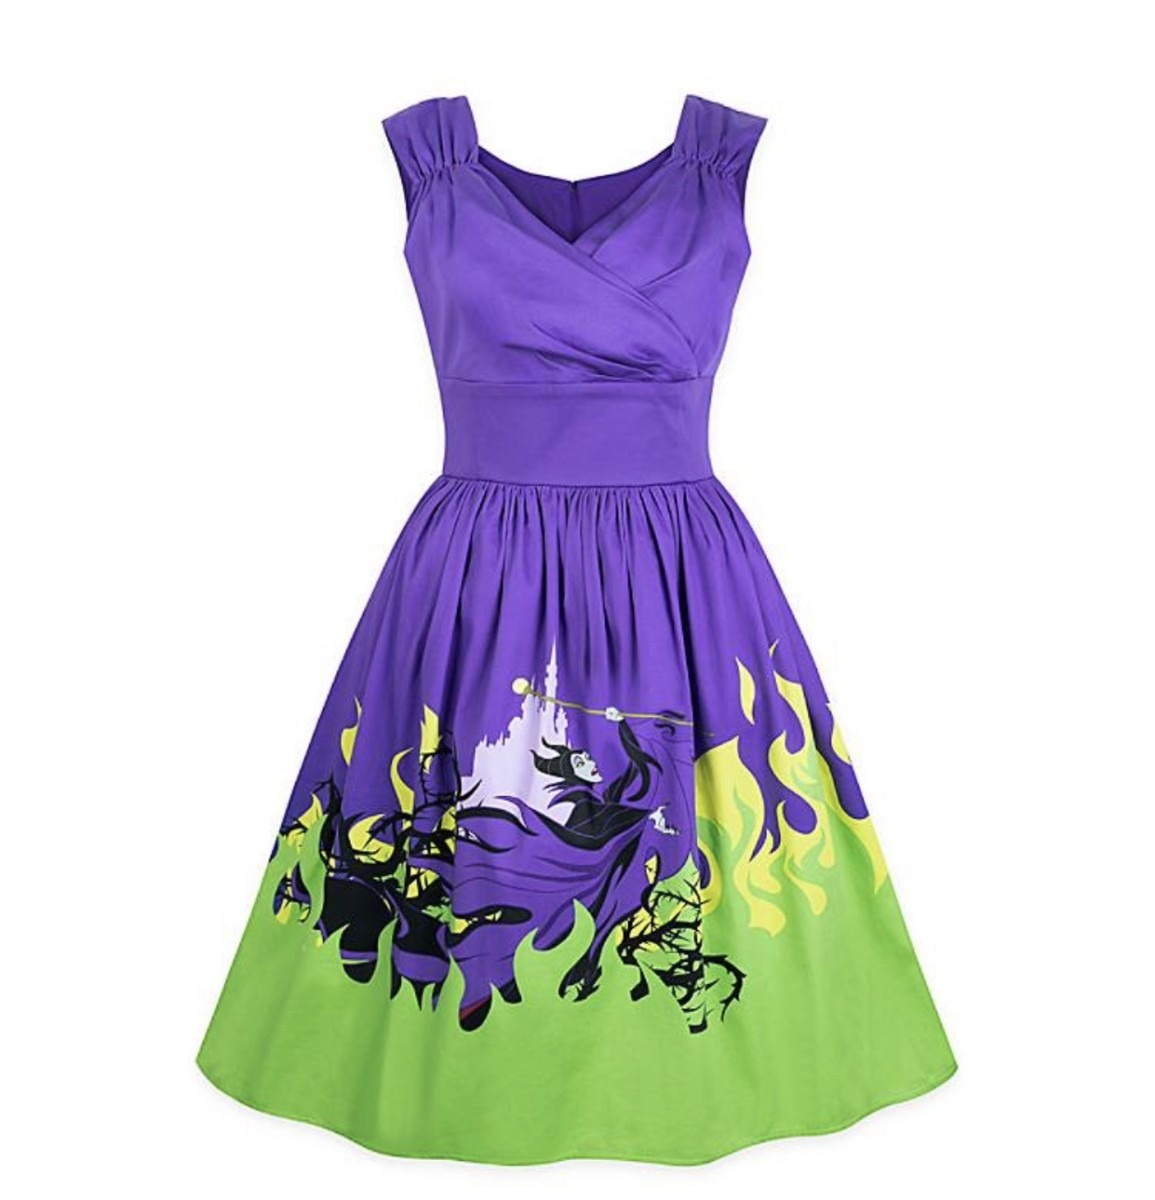 Well, Well... New Maleficent Dress Now on shopDisney! 1